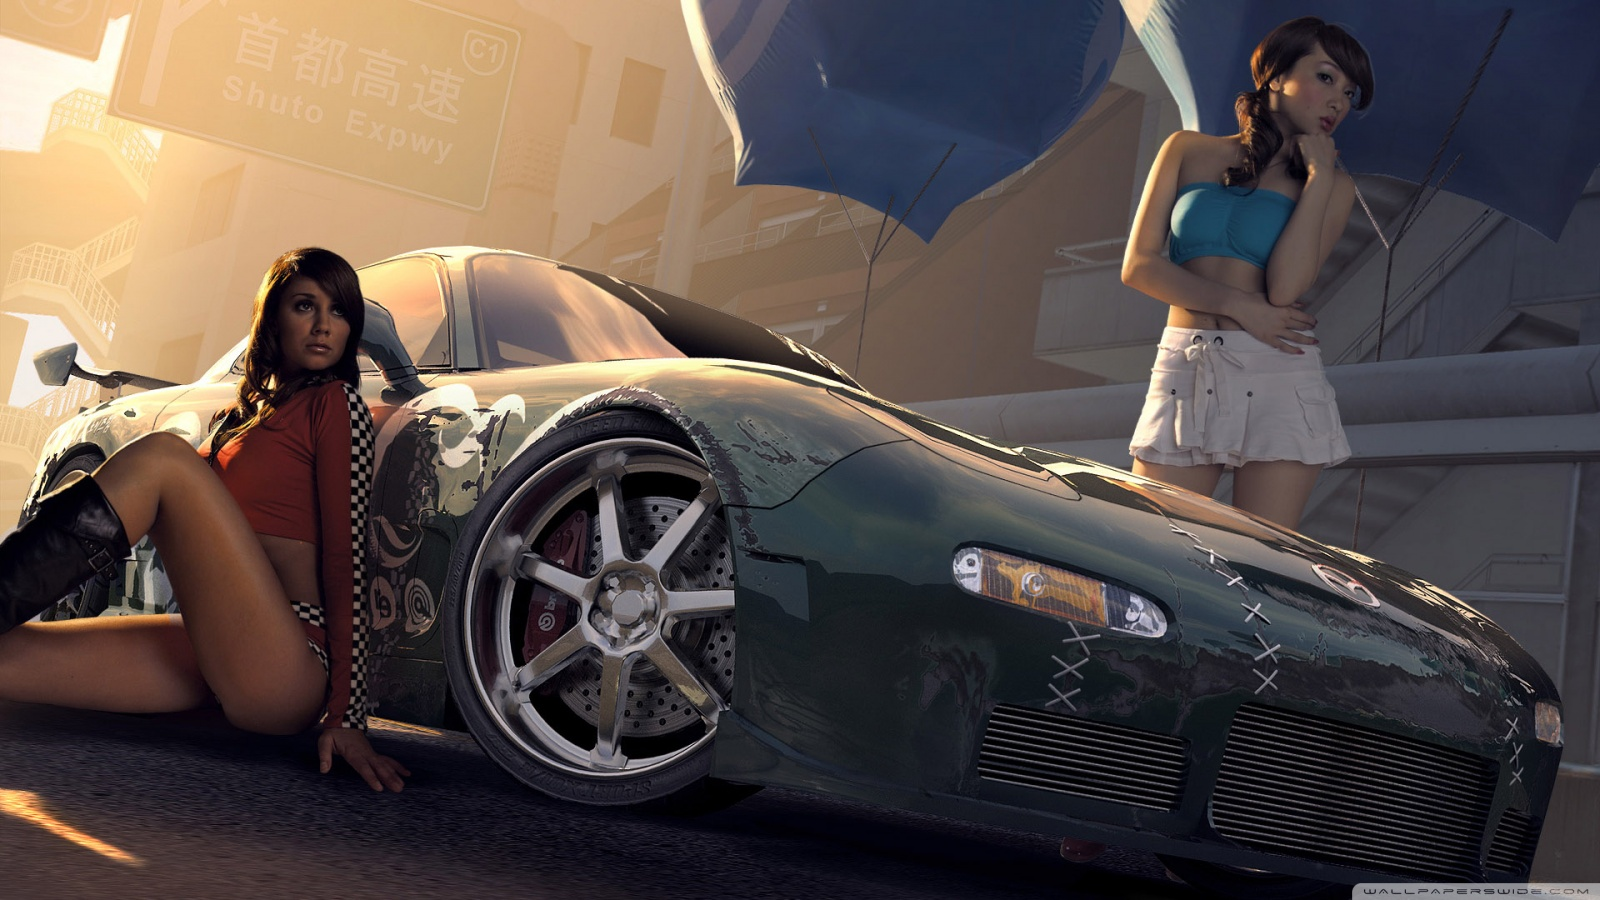 Freaking spot need for speed full hd 1080p wallpapers - Need for speed underground 1 wallpaper ...